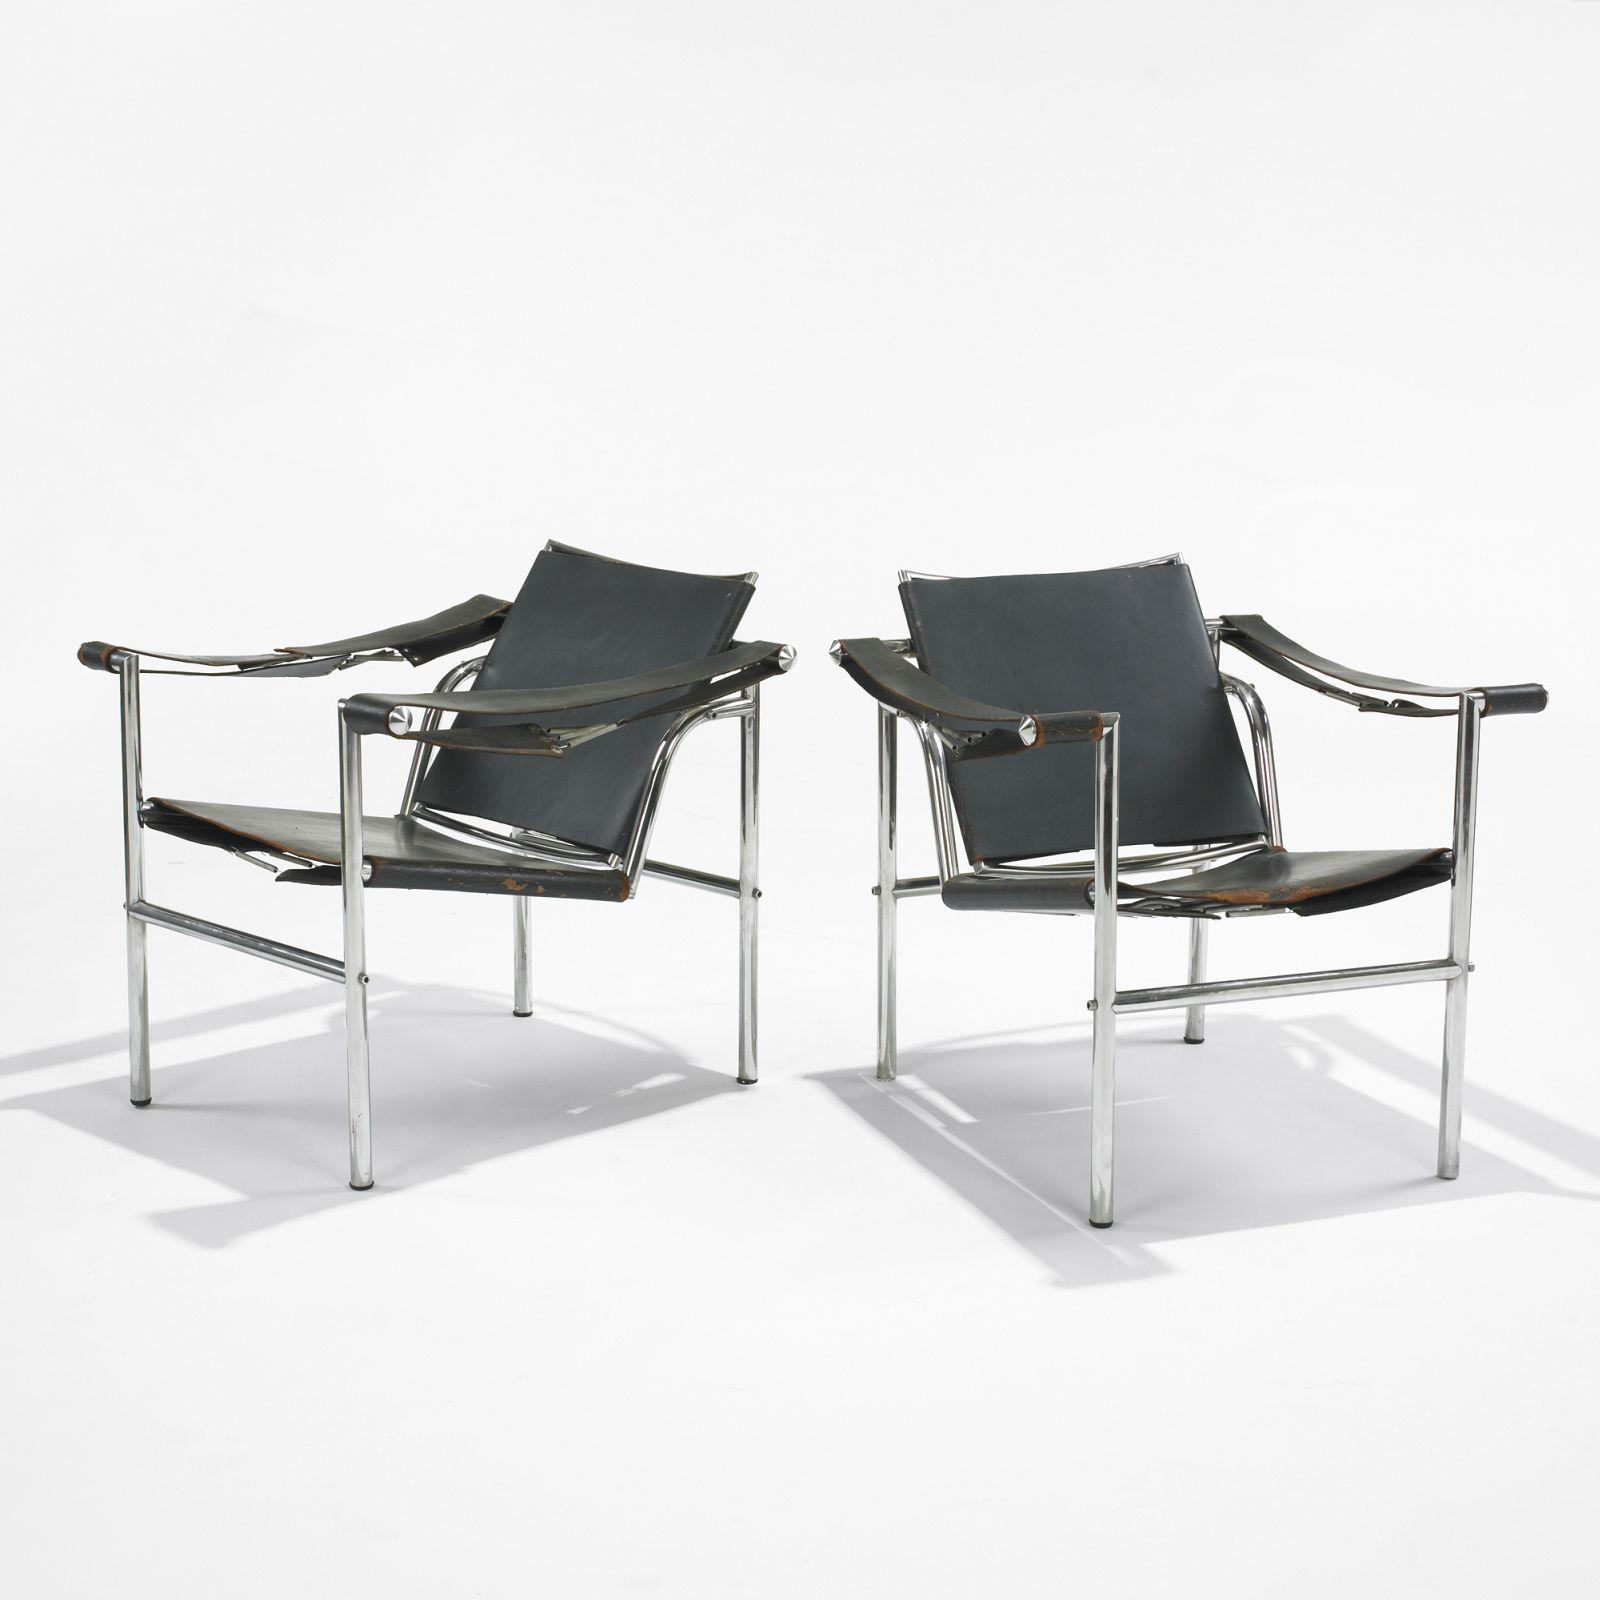 pierre jeanneret charlotte perriand and le corbusier basculant